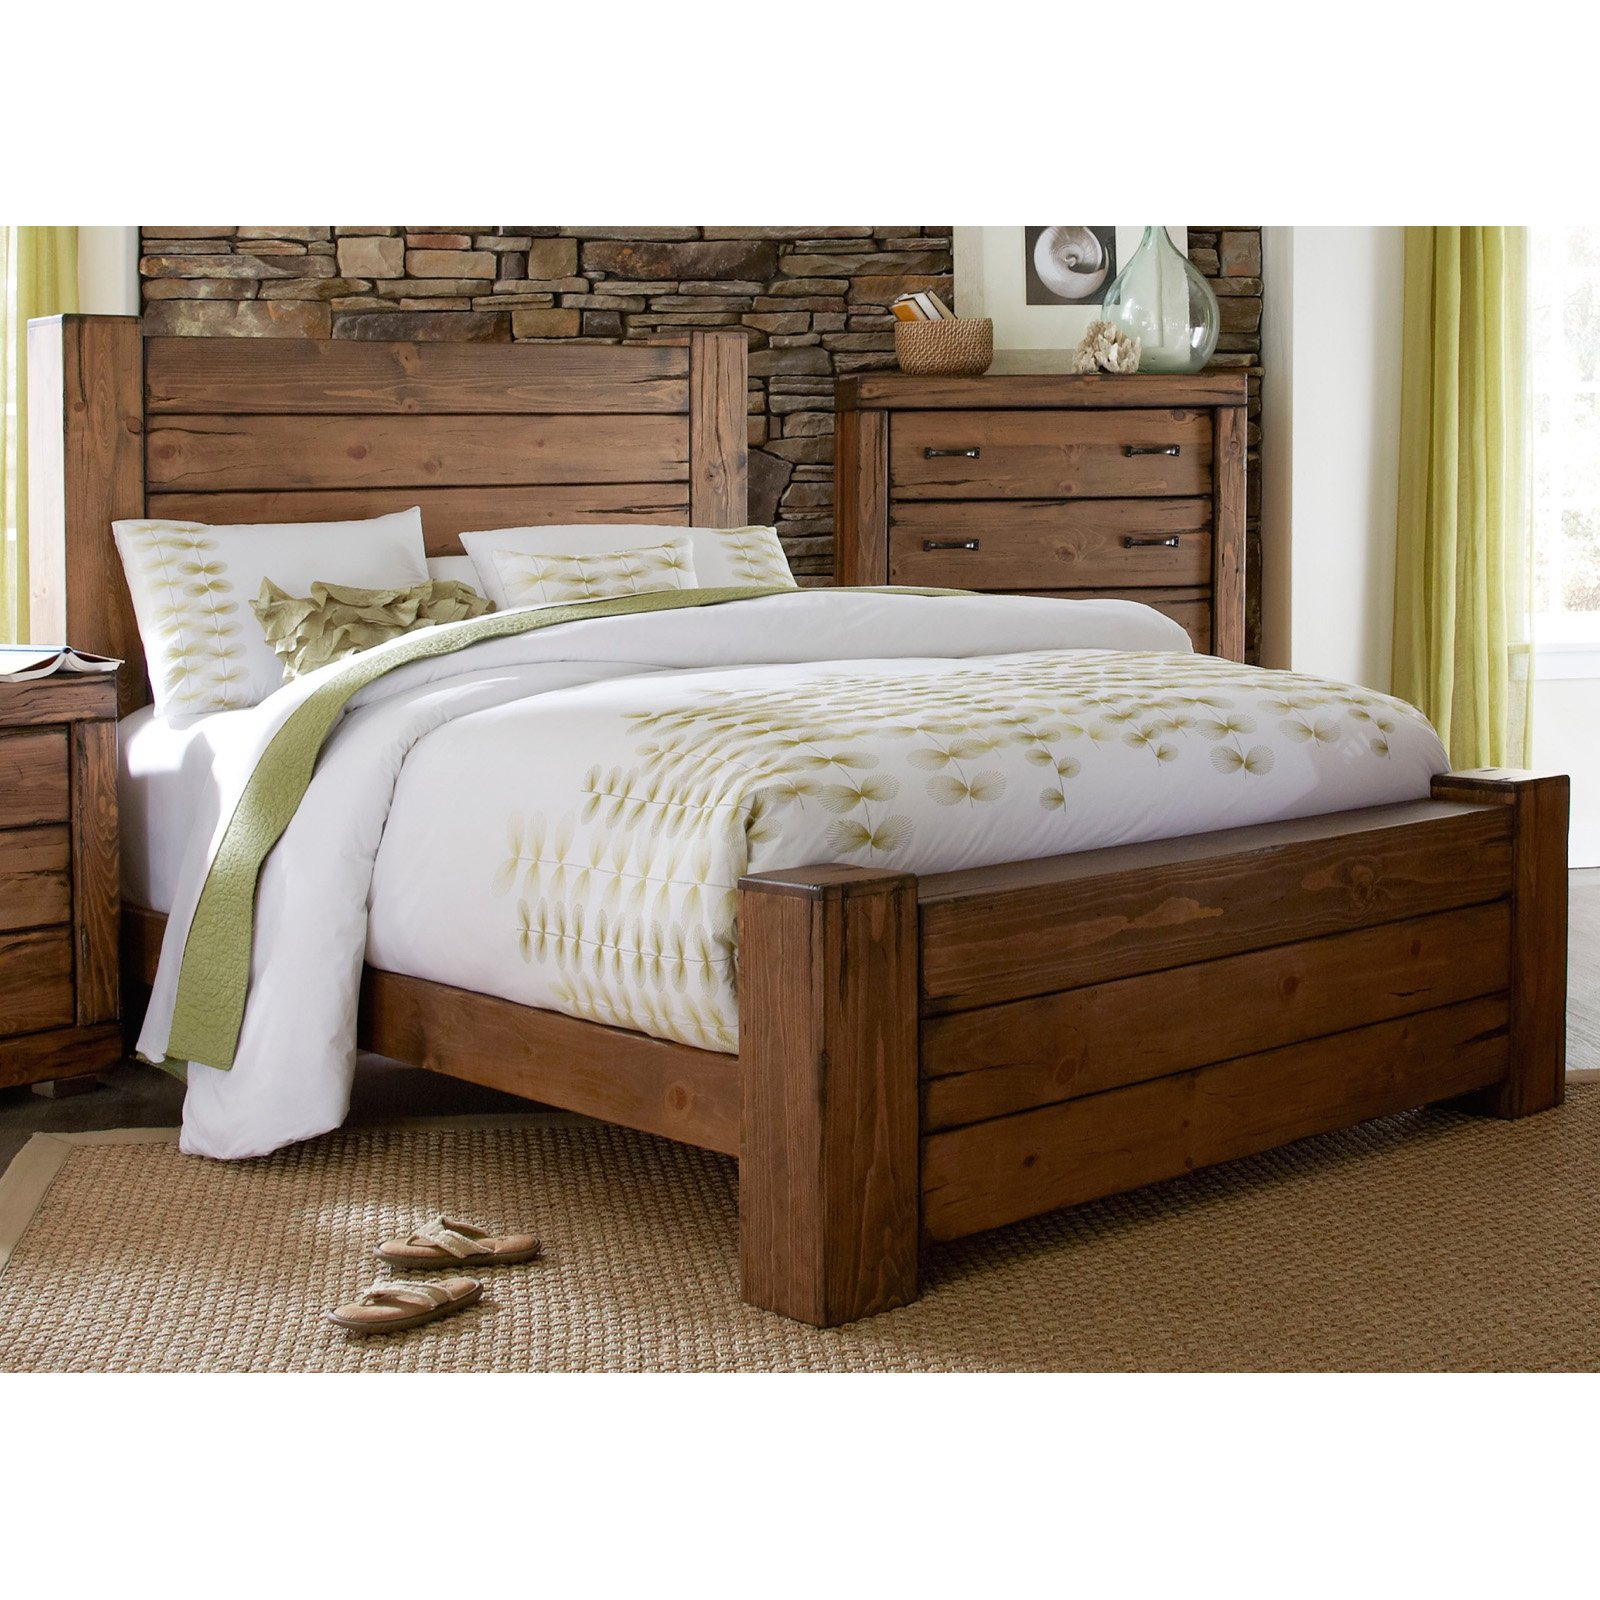 sets bedroom inspiration furniture panel grove color fashionable grayton set driftwood uk